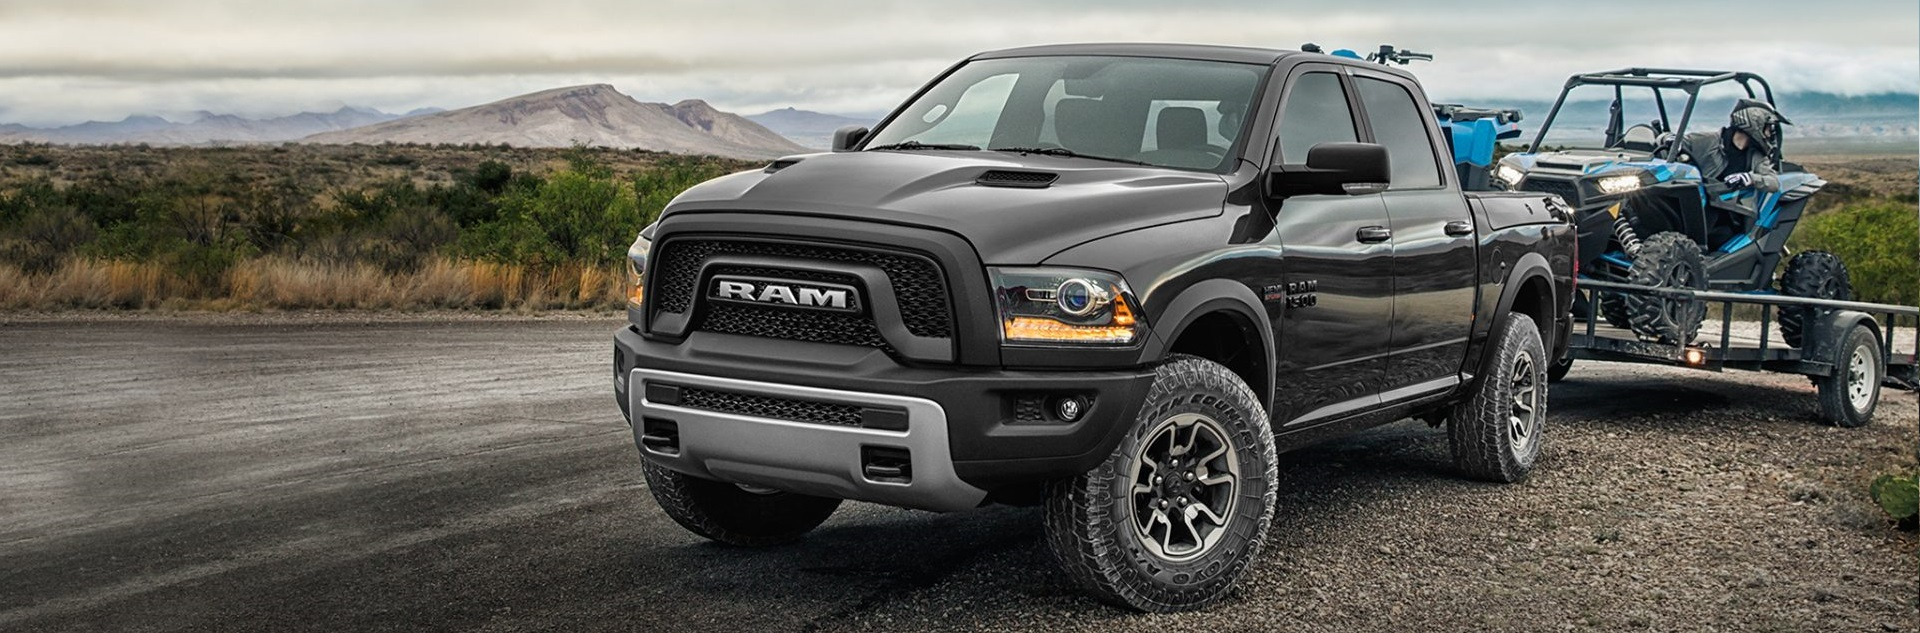 Used Ram Trucks >> Used Ram Trucks For Sale In Columbus Ohio Performance Commercial